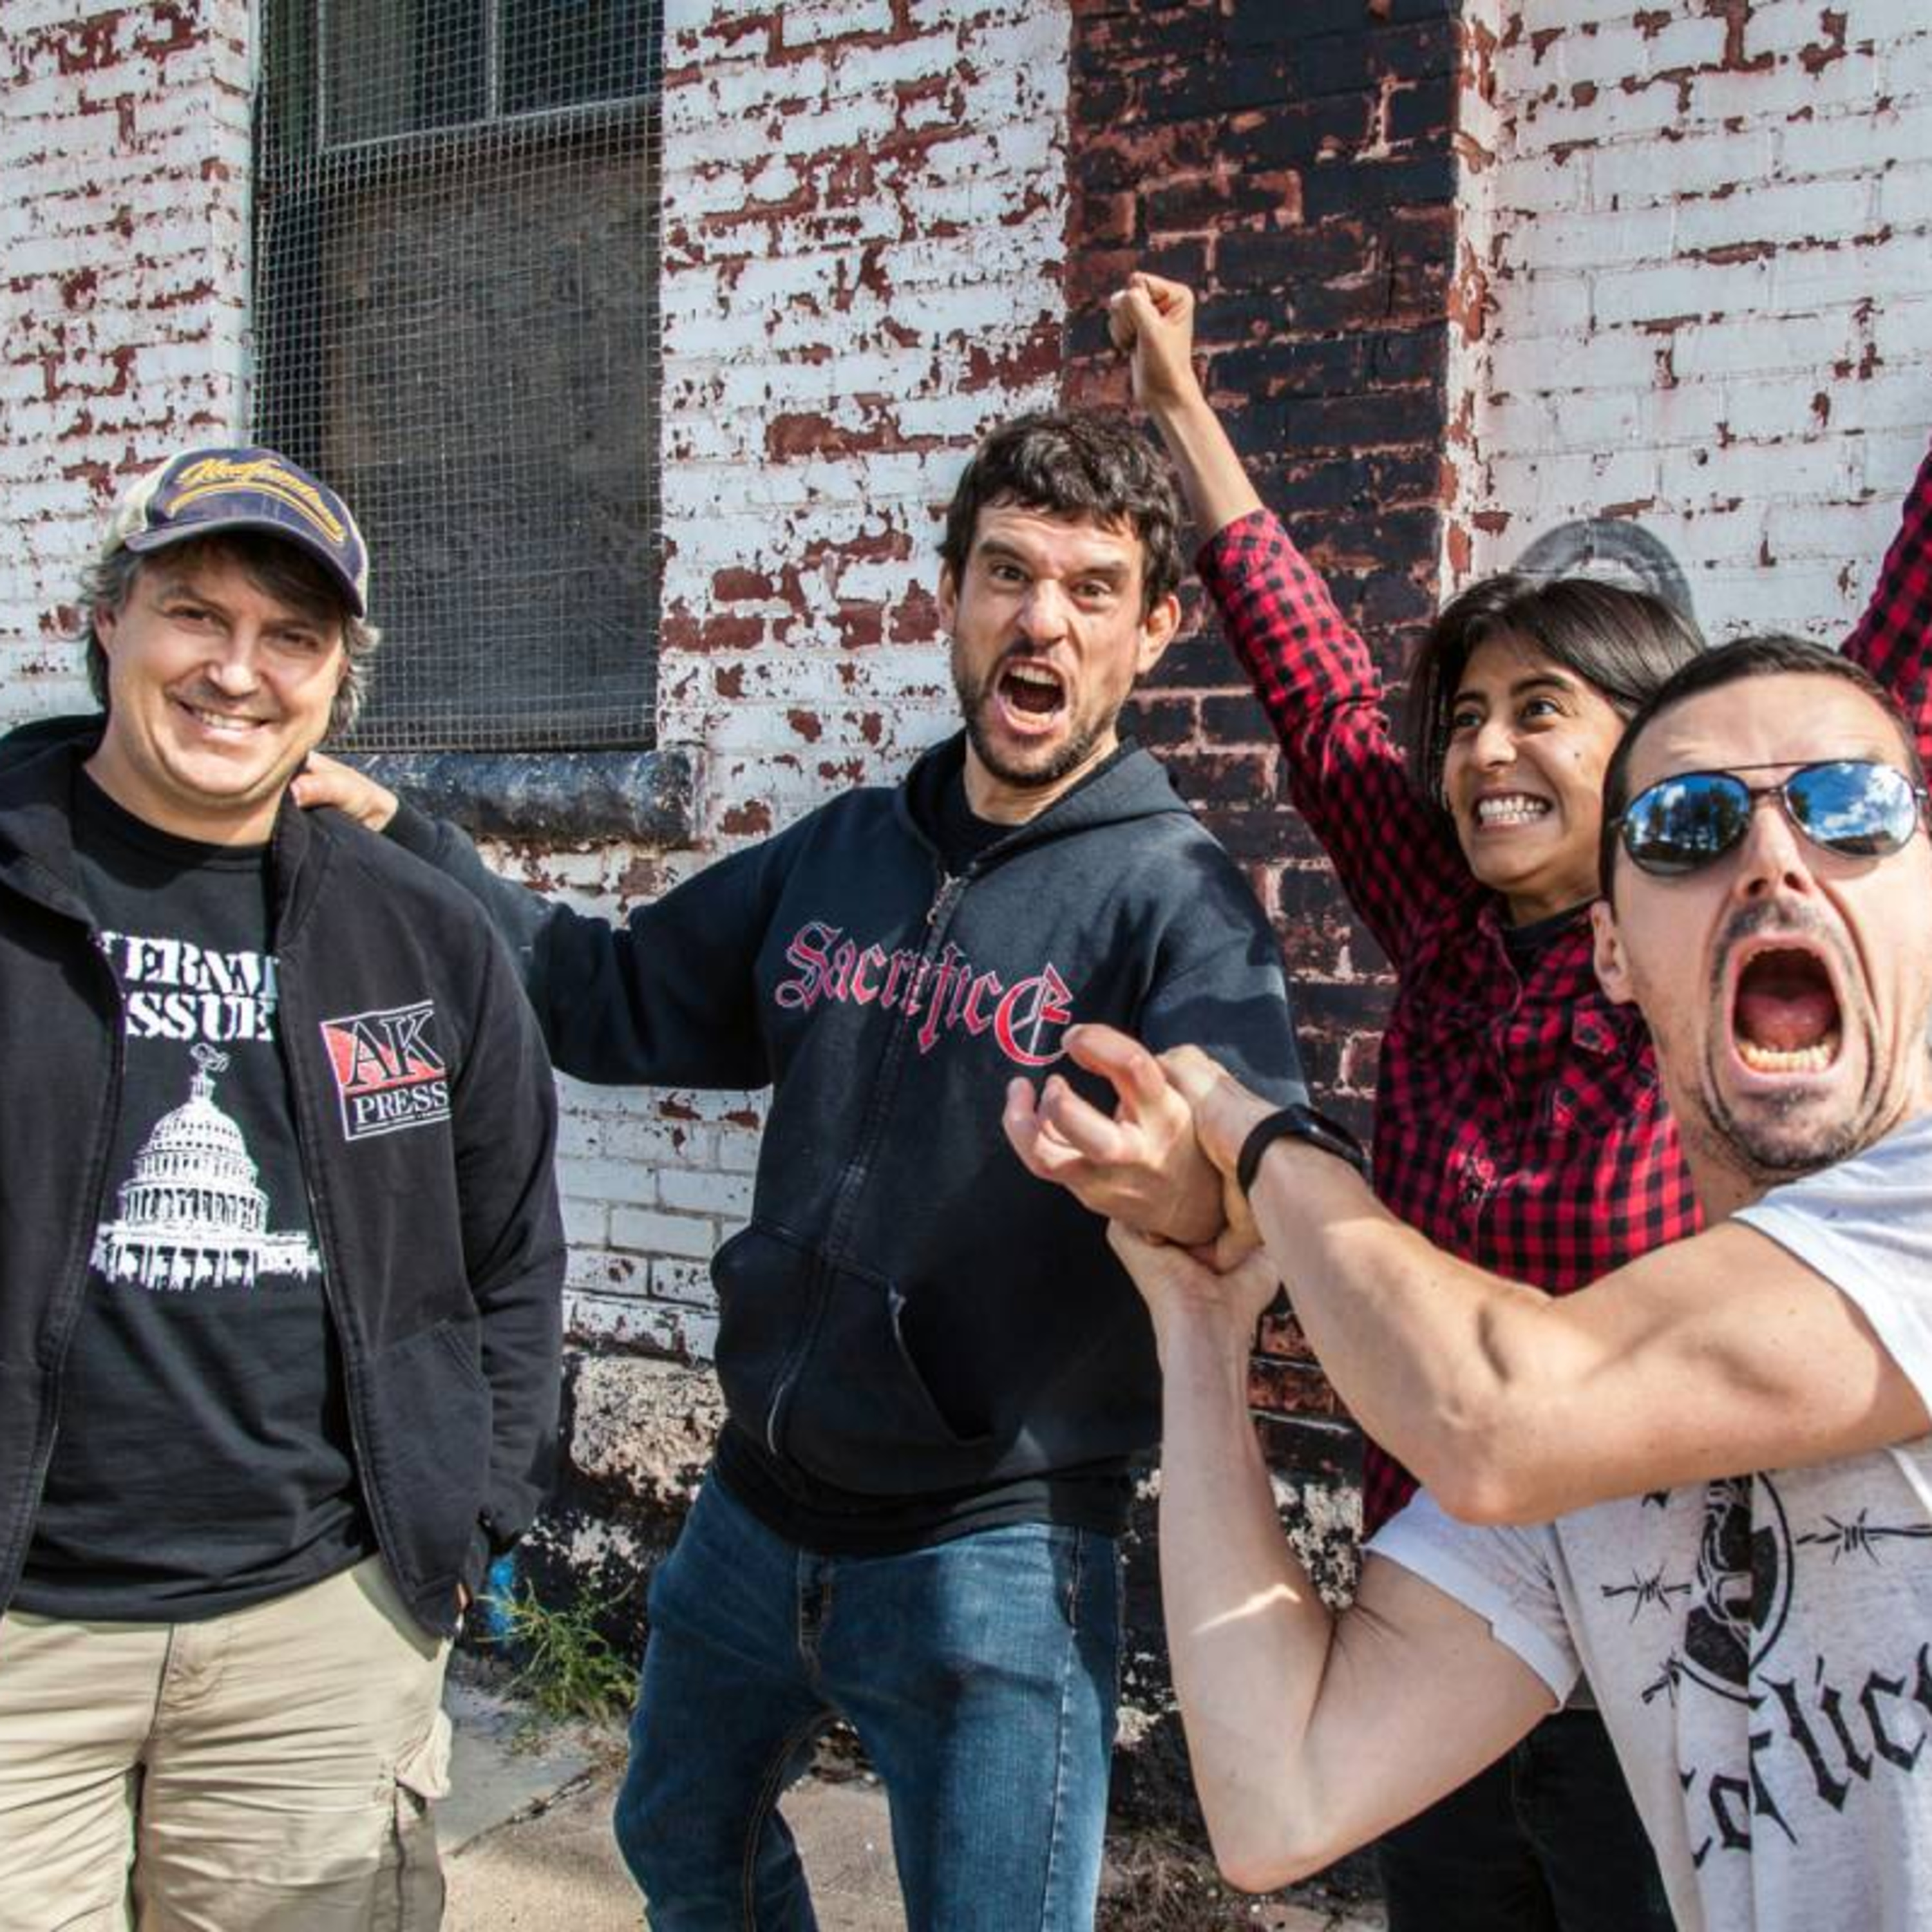 Pucks, Punks, and Politics w/ Propagandhi